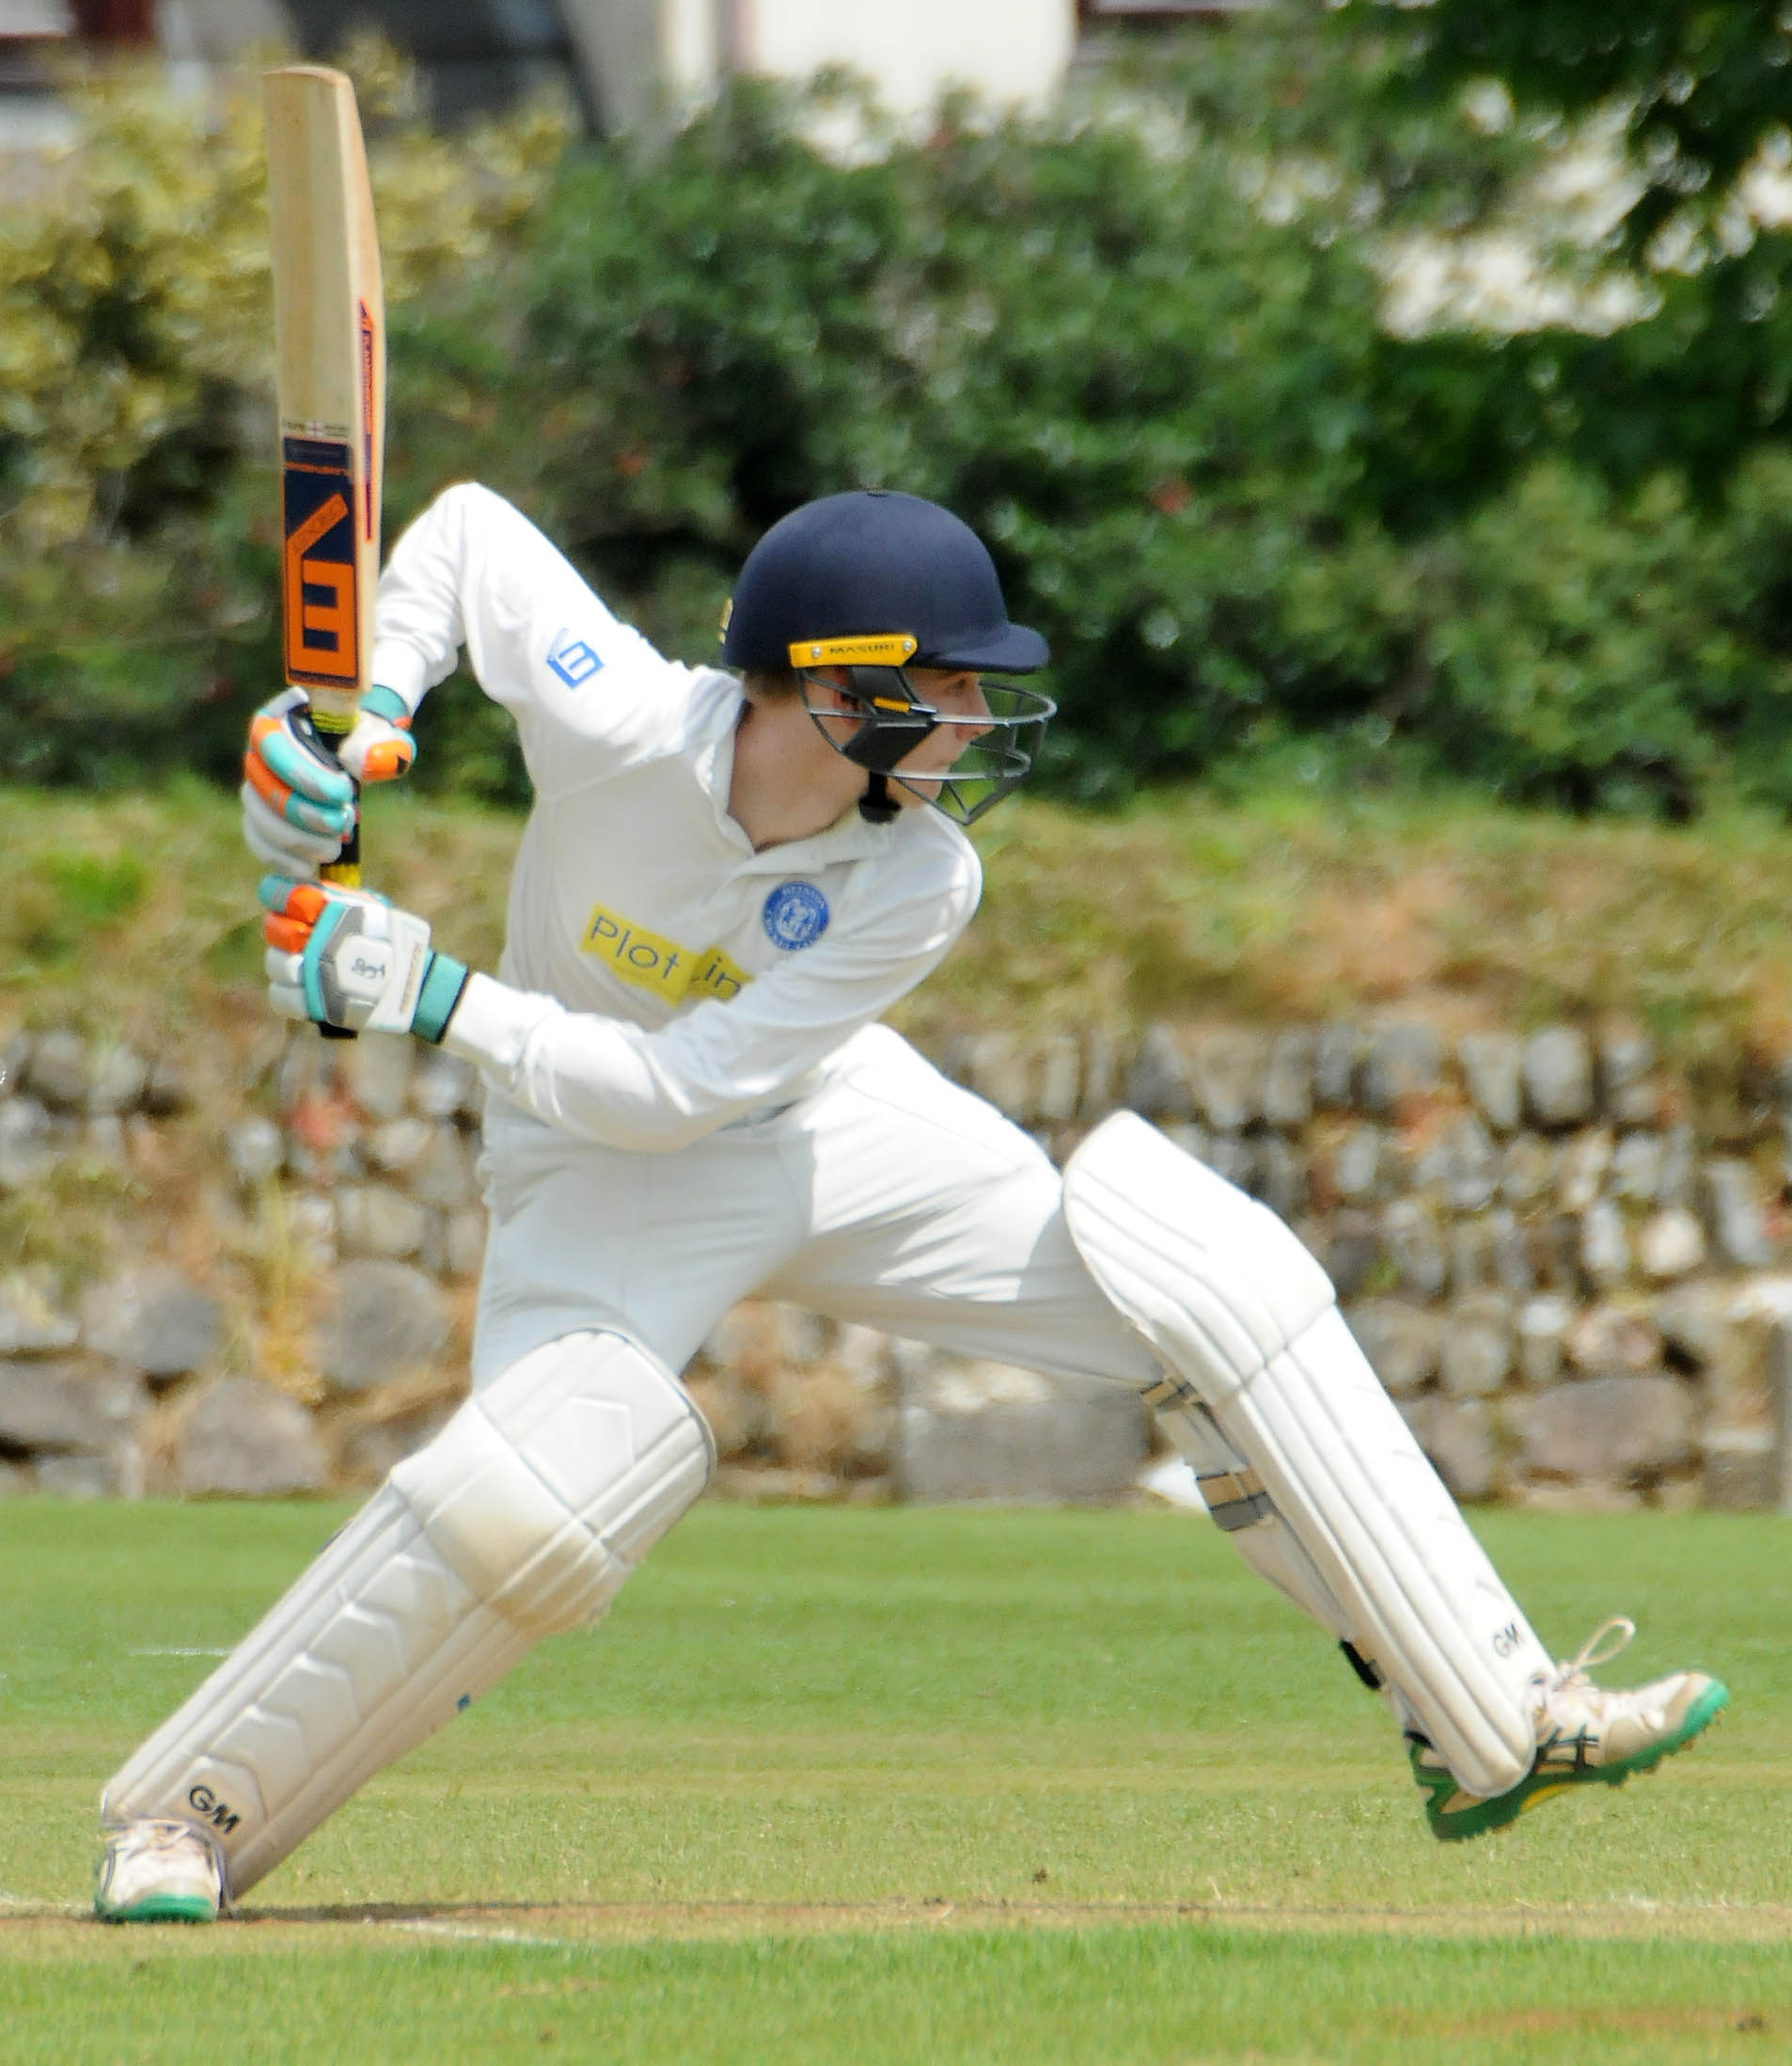 Helston batsman Ross Leathley (above) scored 63 not out in his side's 148-run win at home to Redruth 2 on Saturday. Picture by Colin Higgs